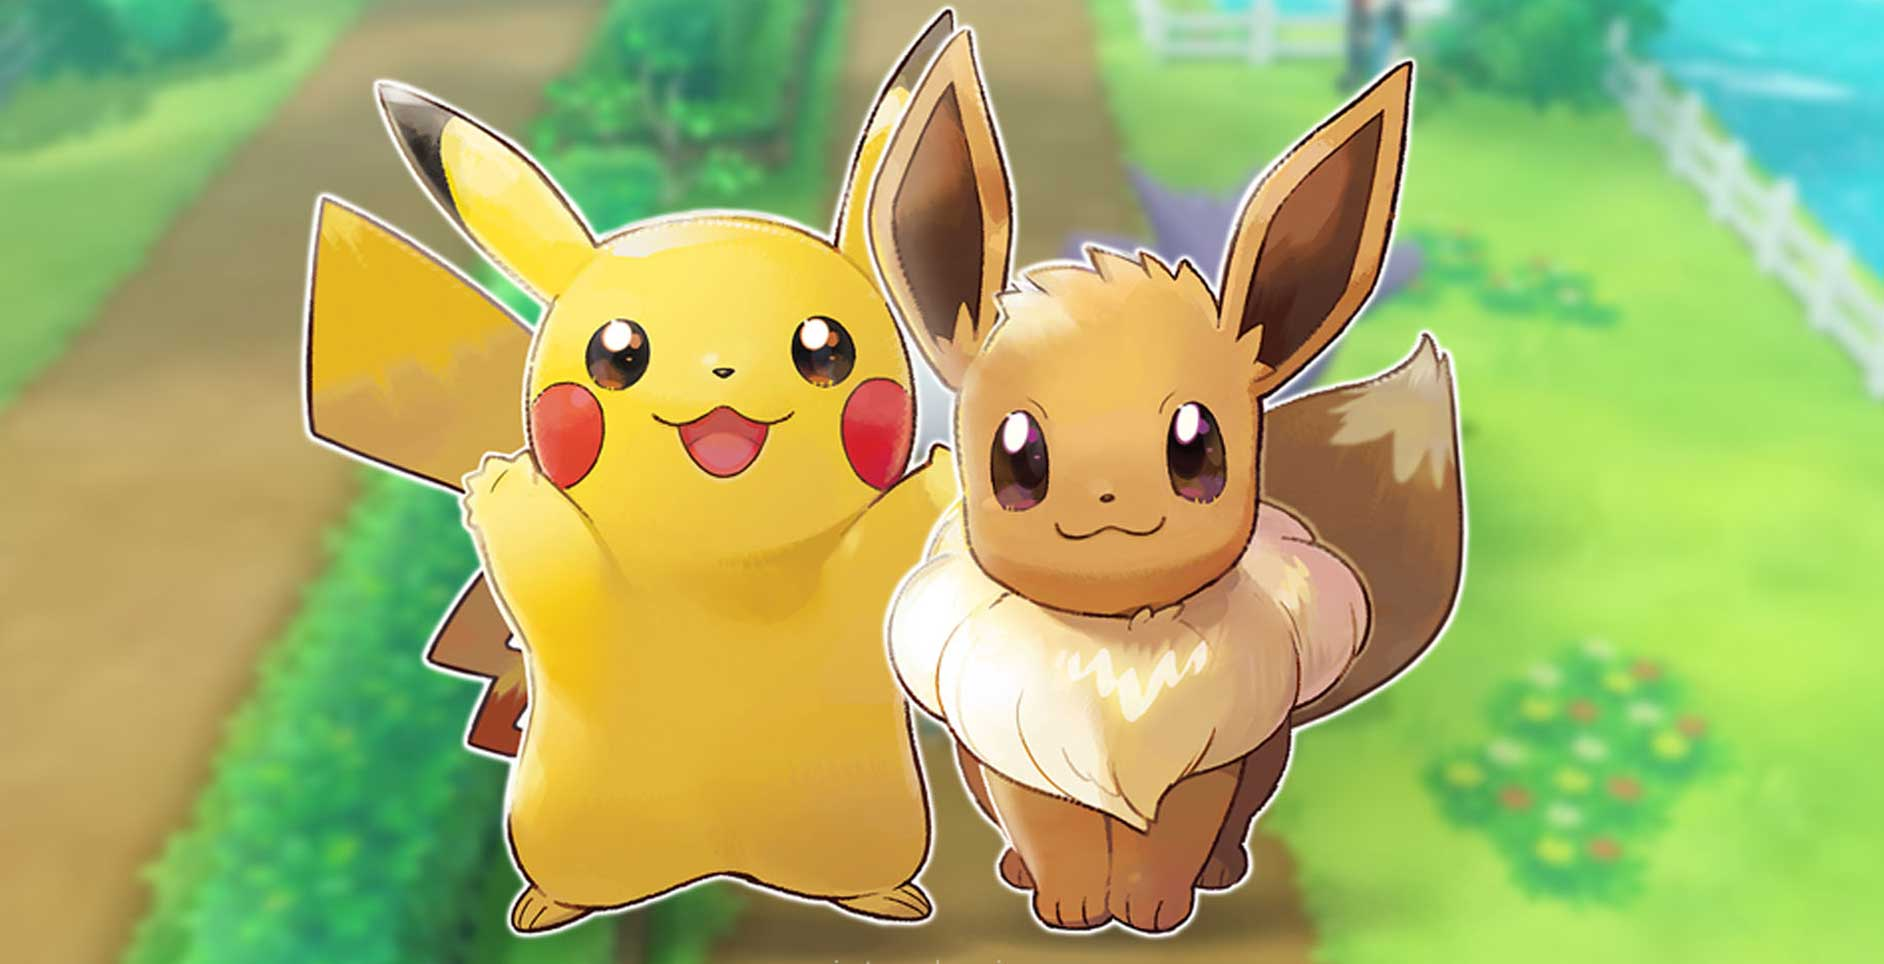 First Pokemon Detective Pikachu Movie Trailer Released